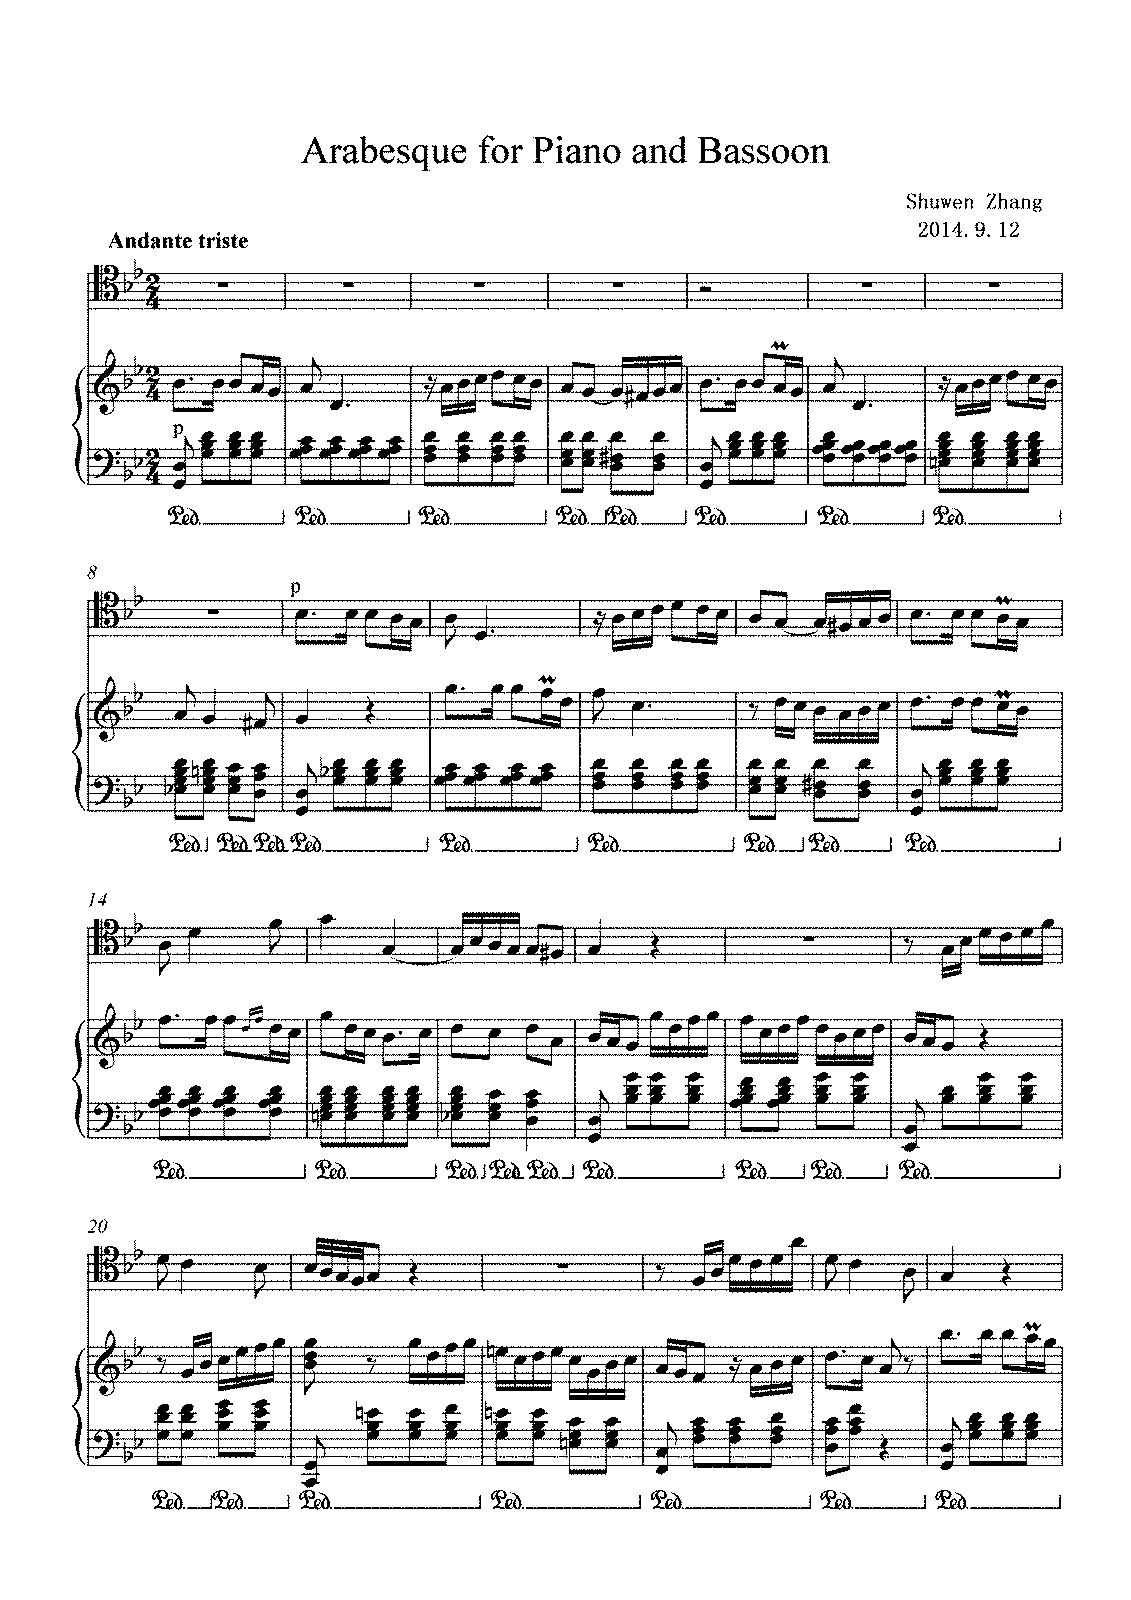 PMLP586577-Arabesque in g minor for Bassoon and Piano.pdf